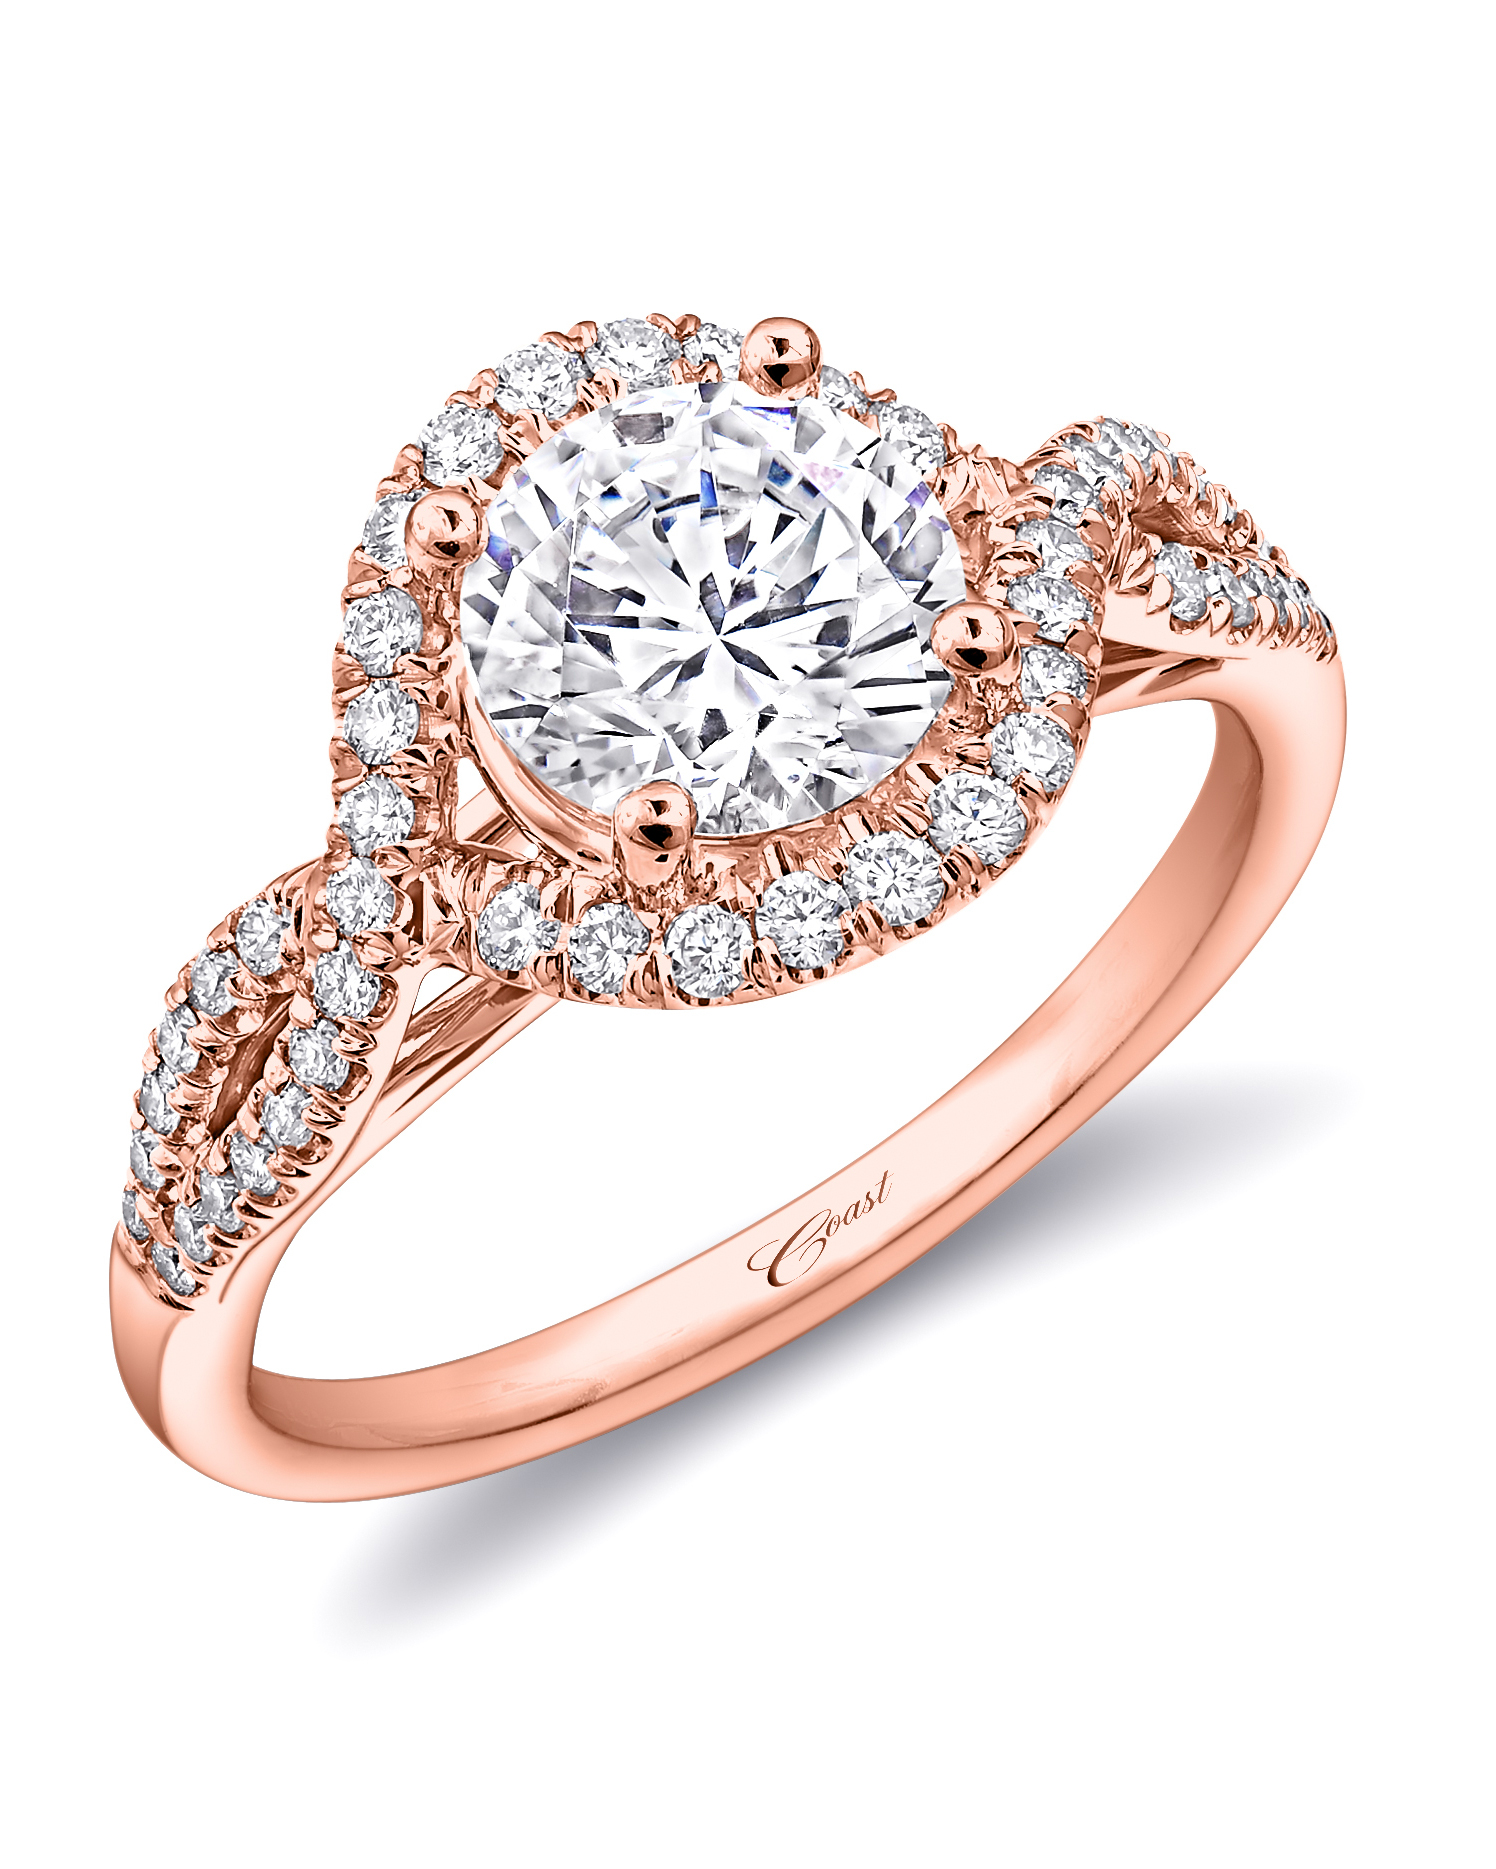 coast-diamond-rose-gold-lc5449-halo-fishtail-setting-engagement-ring-0816.jpg